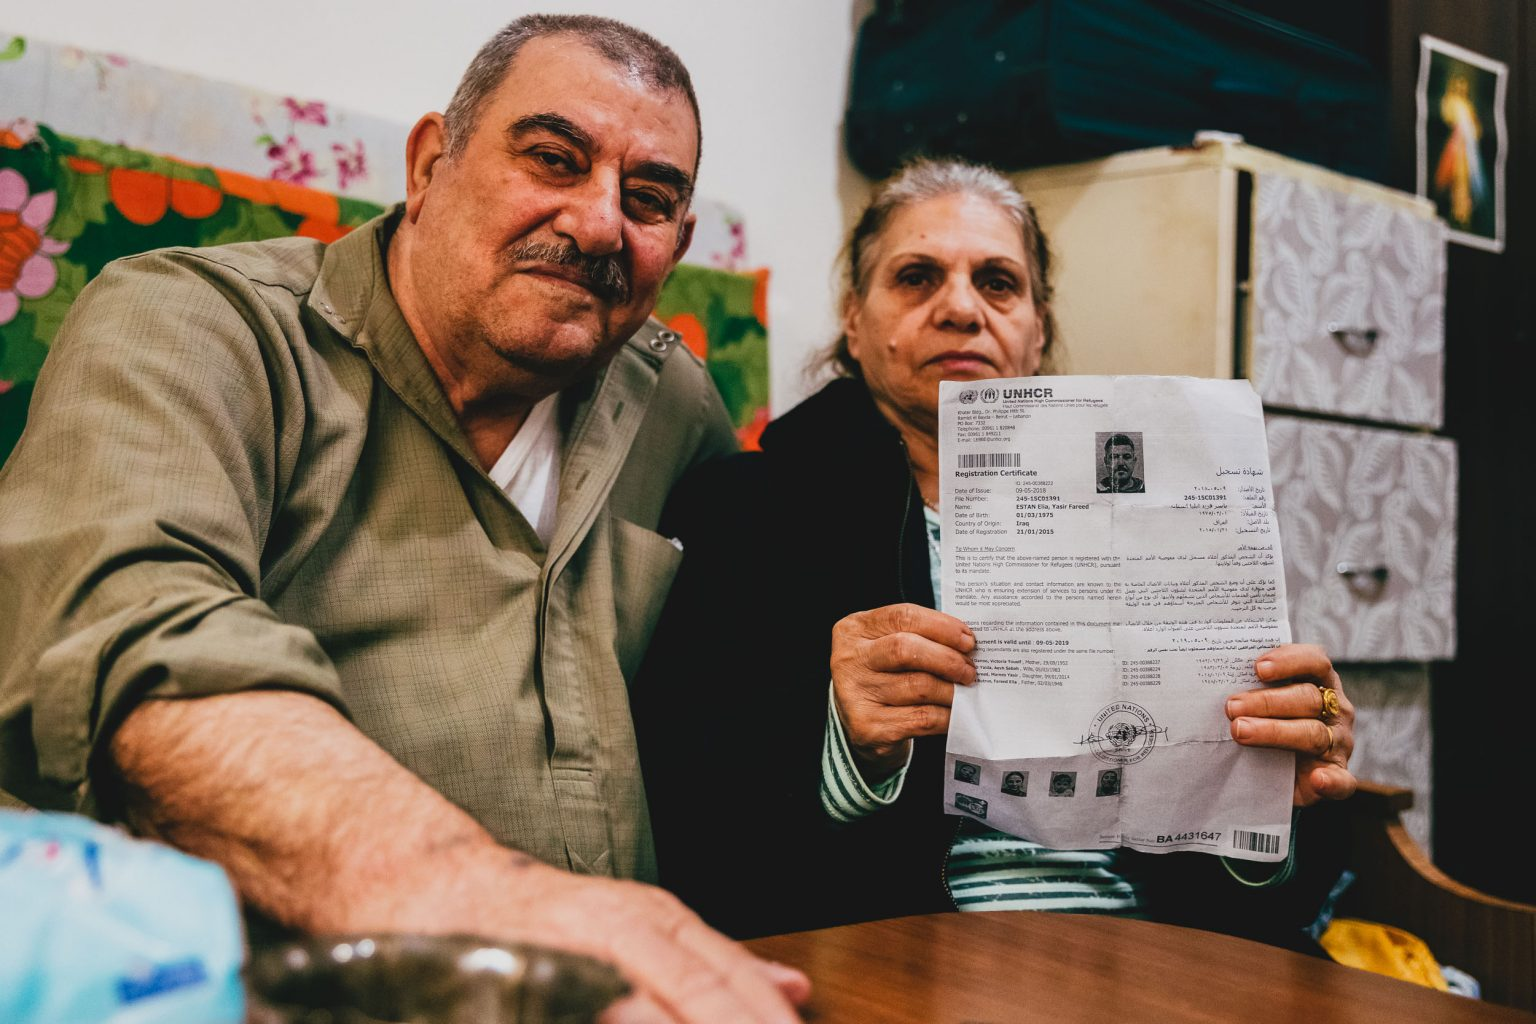 THE EXILE TO LEBANON OF VICTORIA AND FARIDELIA, IRAQI CHRISTIAN REFUGEES COUPLE REGISTERED WITH THE UNHCR